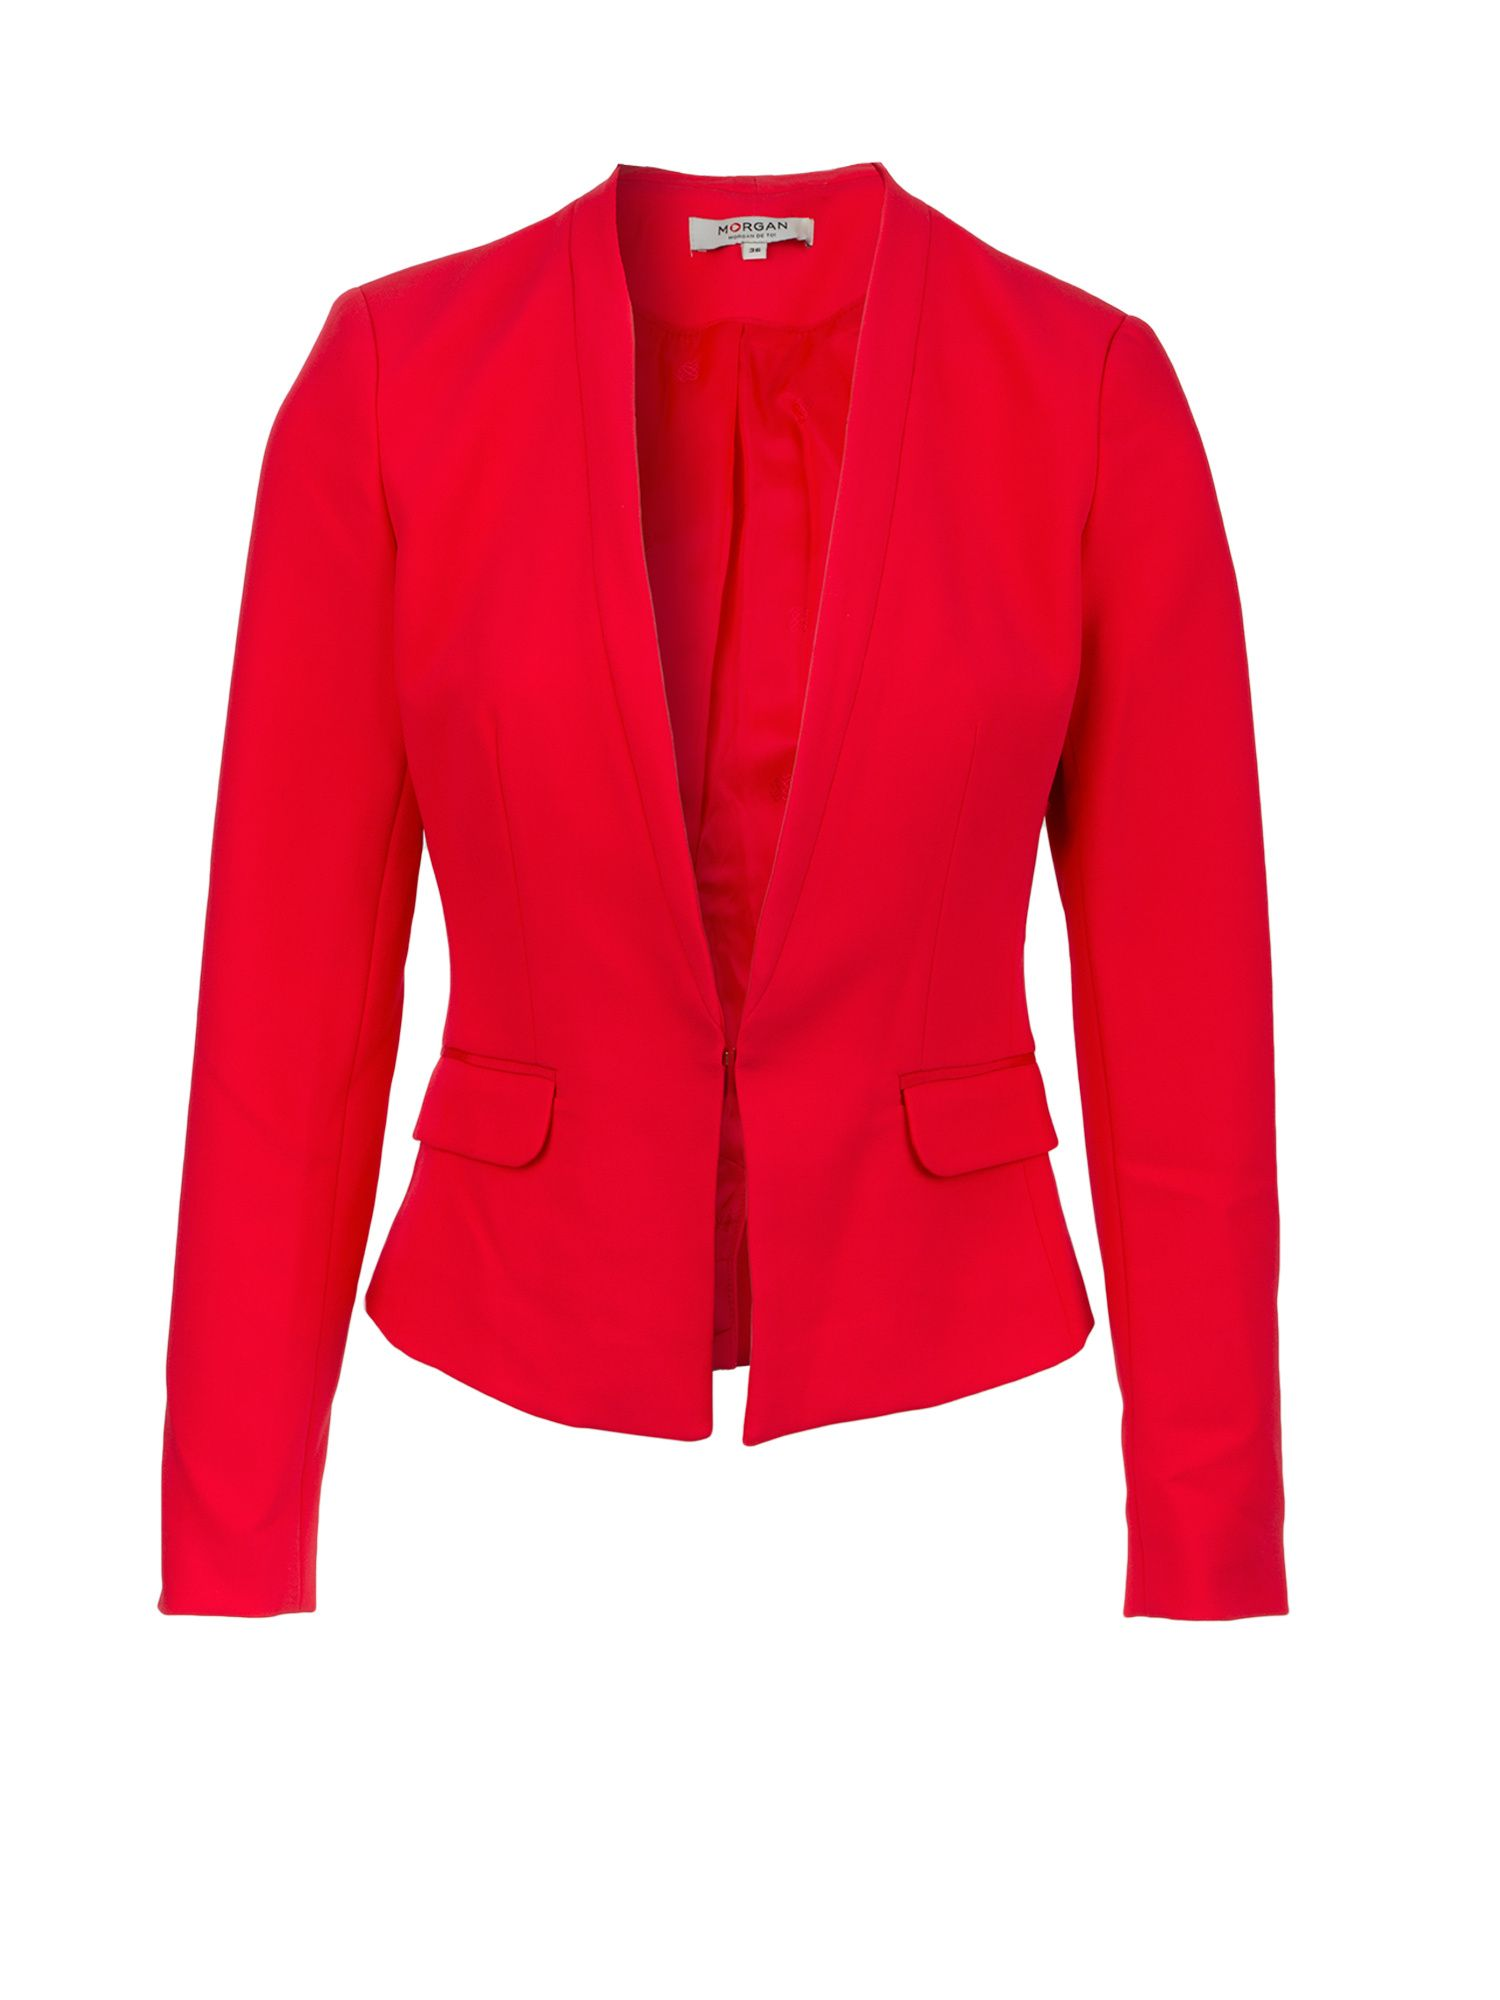 Morgan Sergé Fitted Jacket, Hot Pink